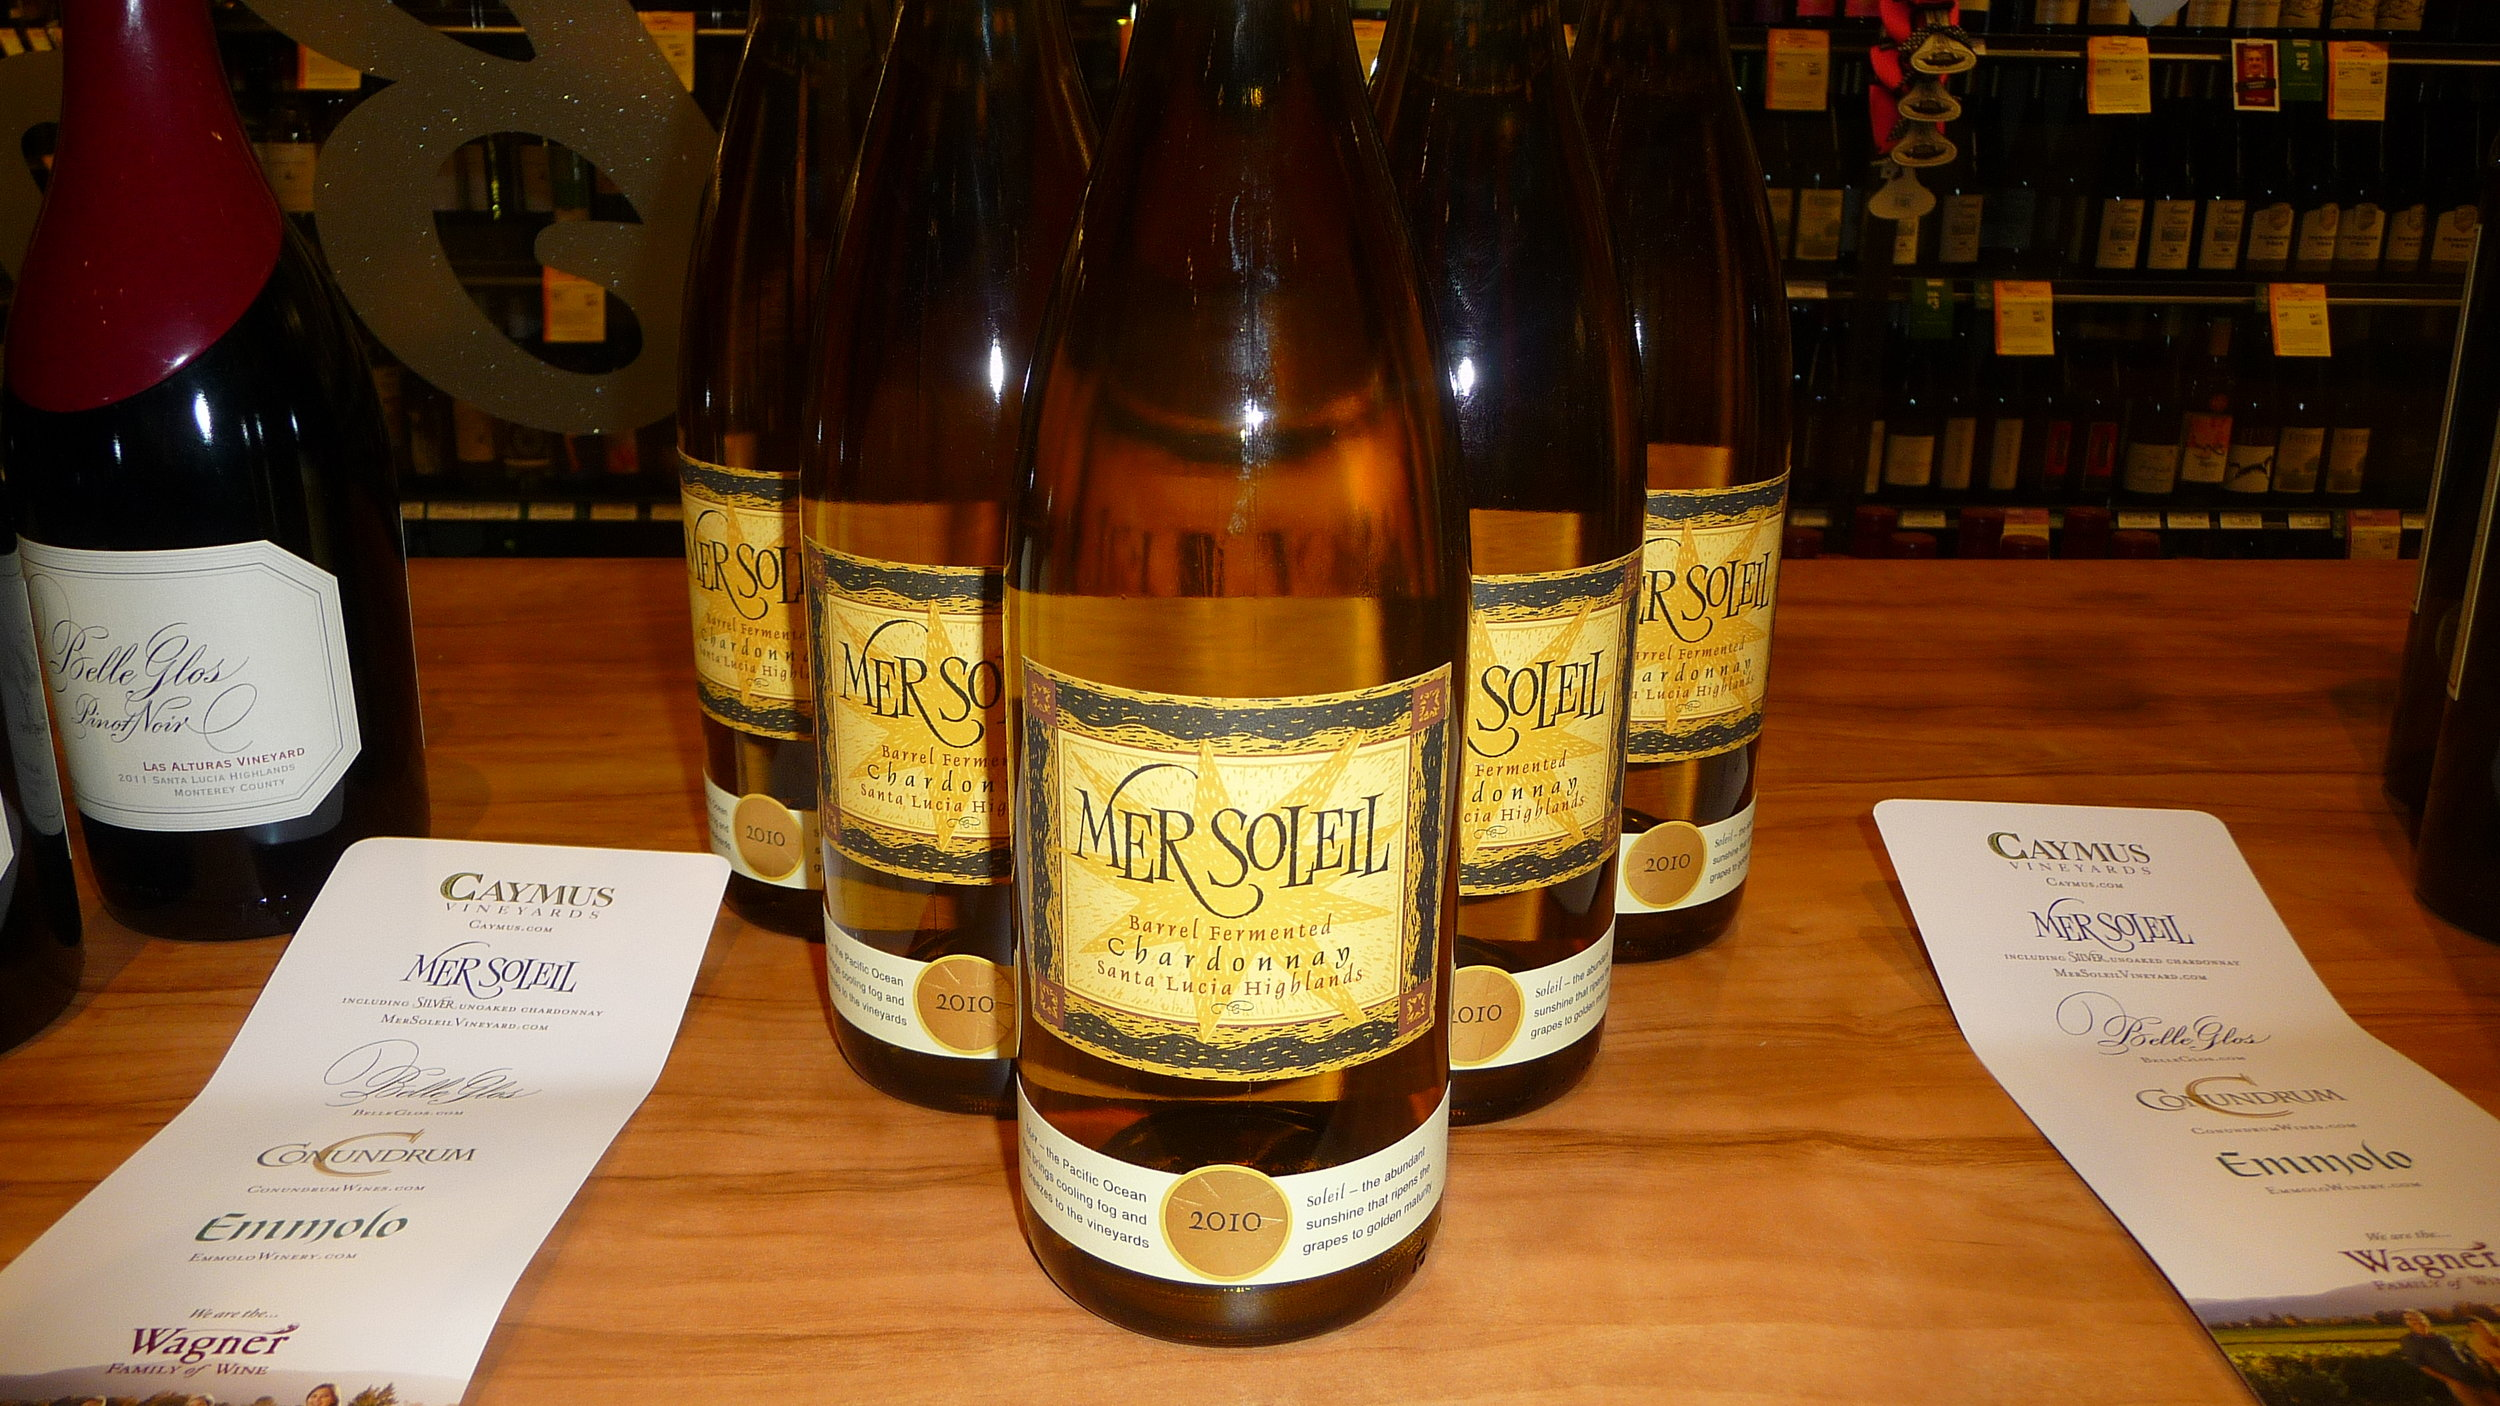 The delight of my day-Charlie Wagn'ers 2012 Mer Soleil Reserve Chardonnay